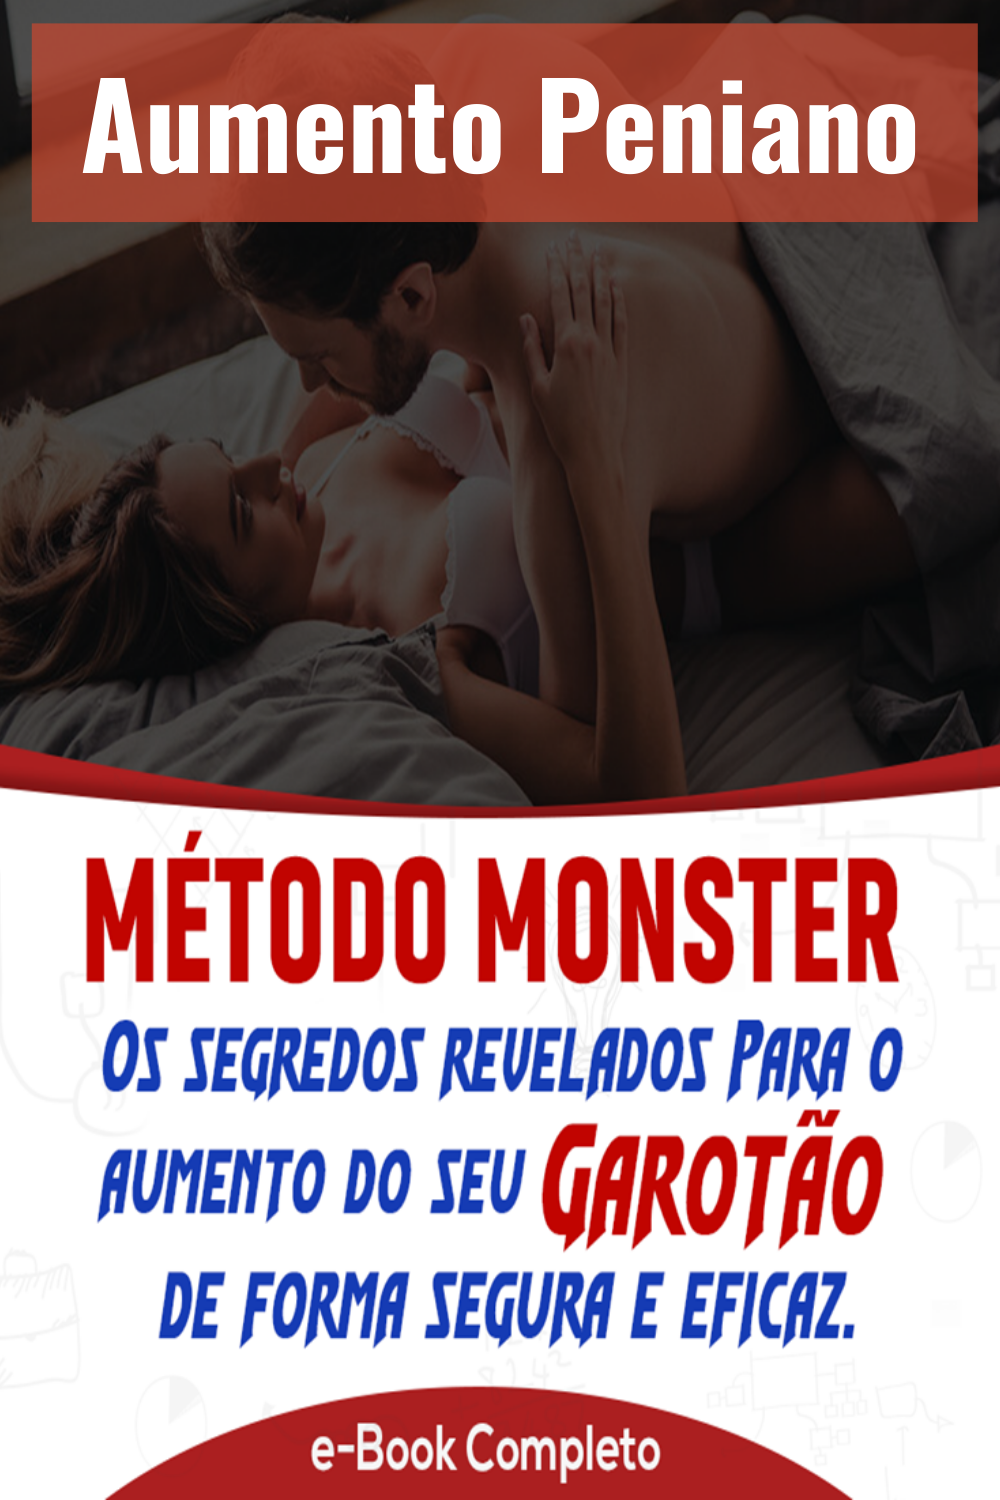 método monster 2.0 pdf download